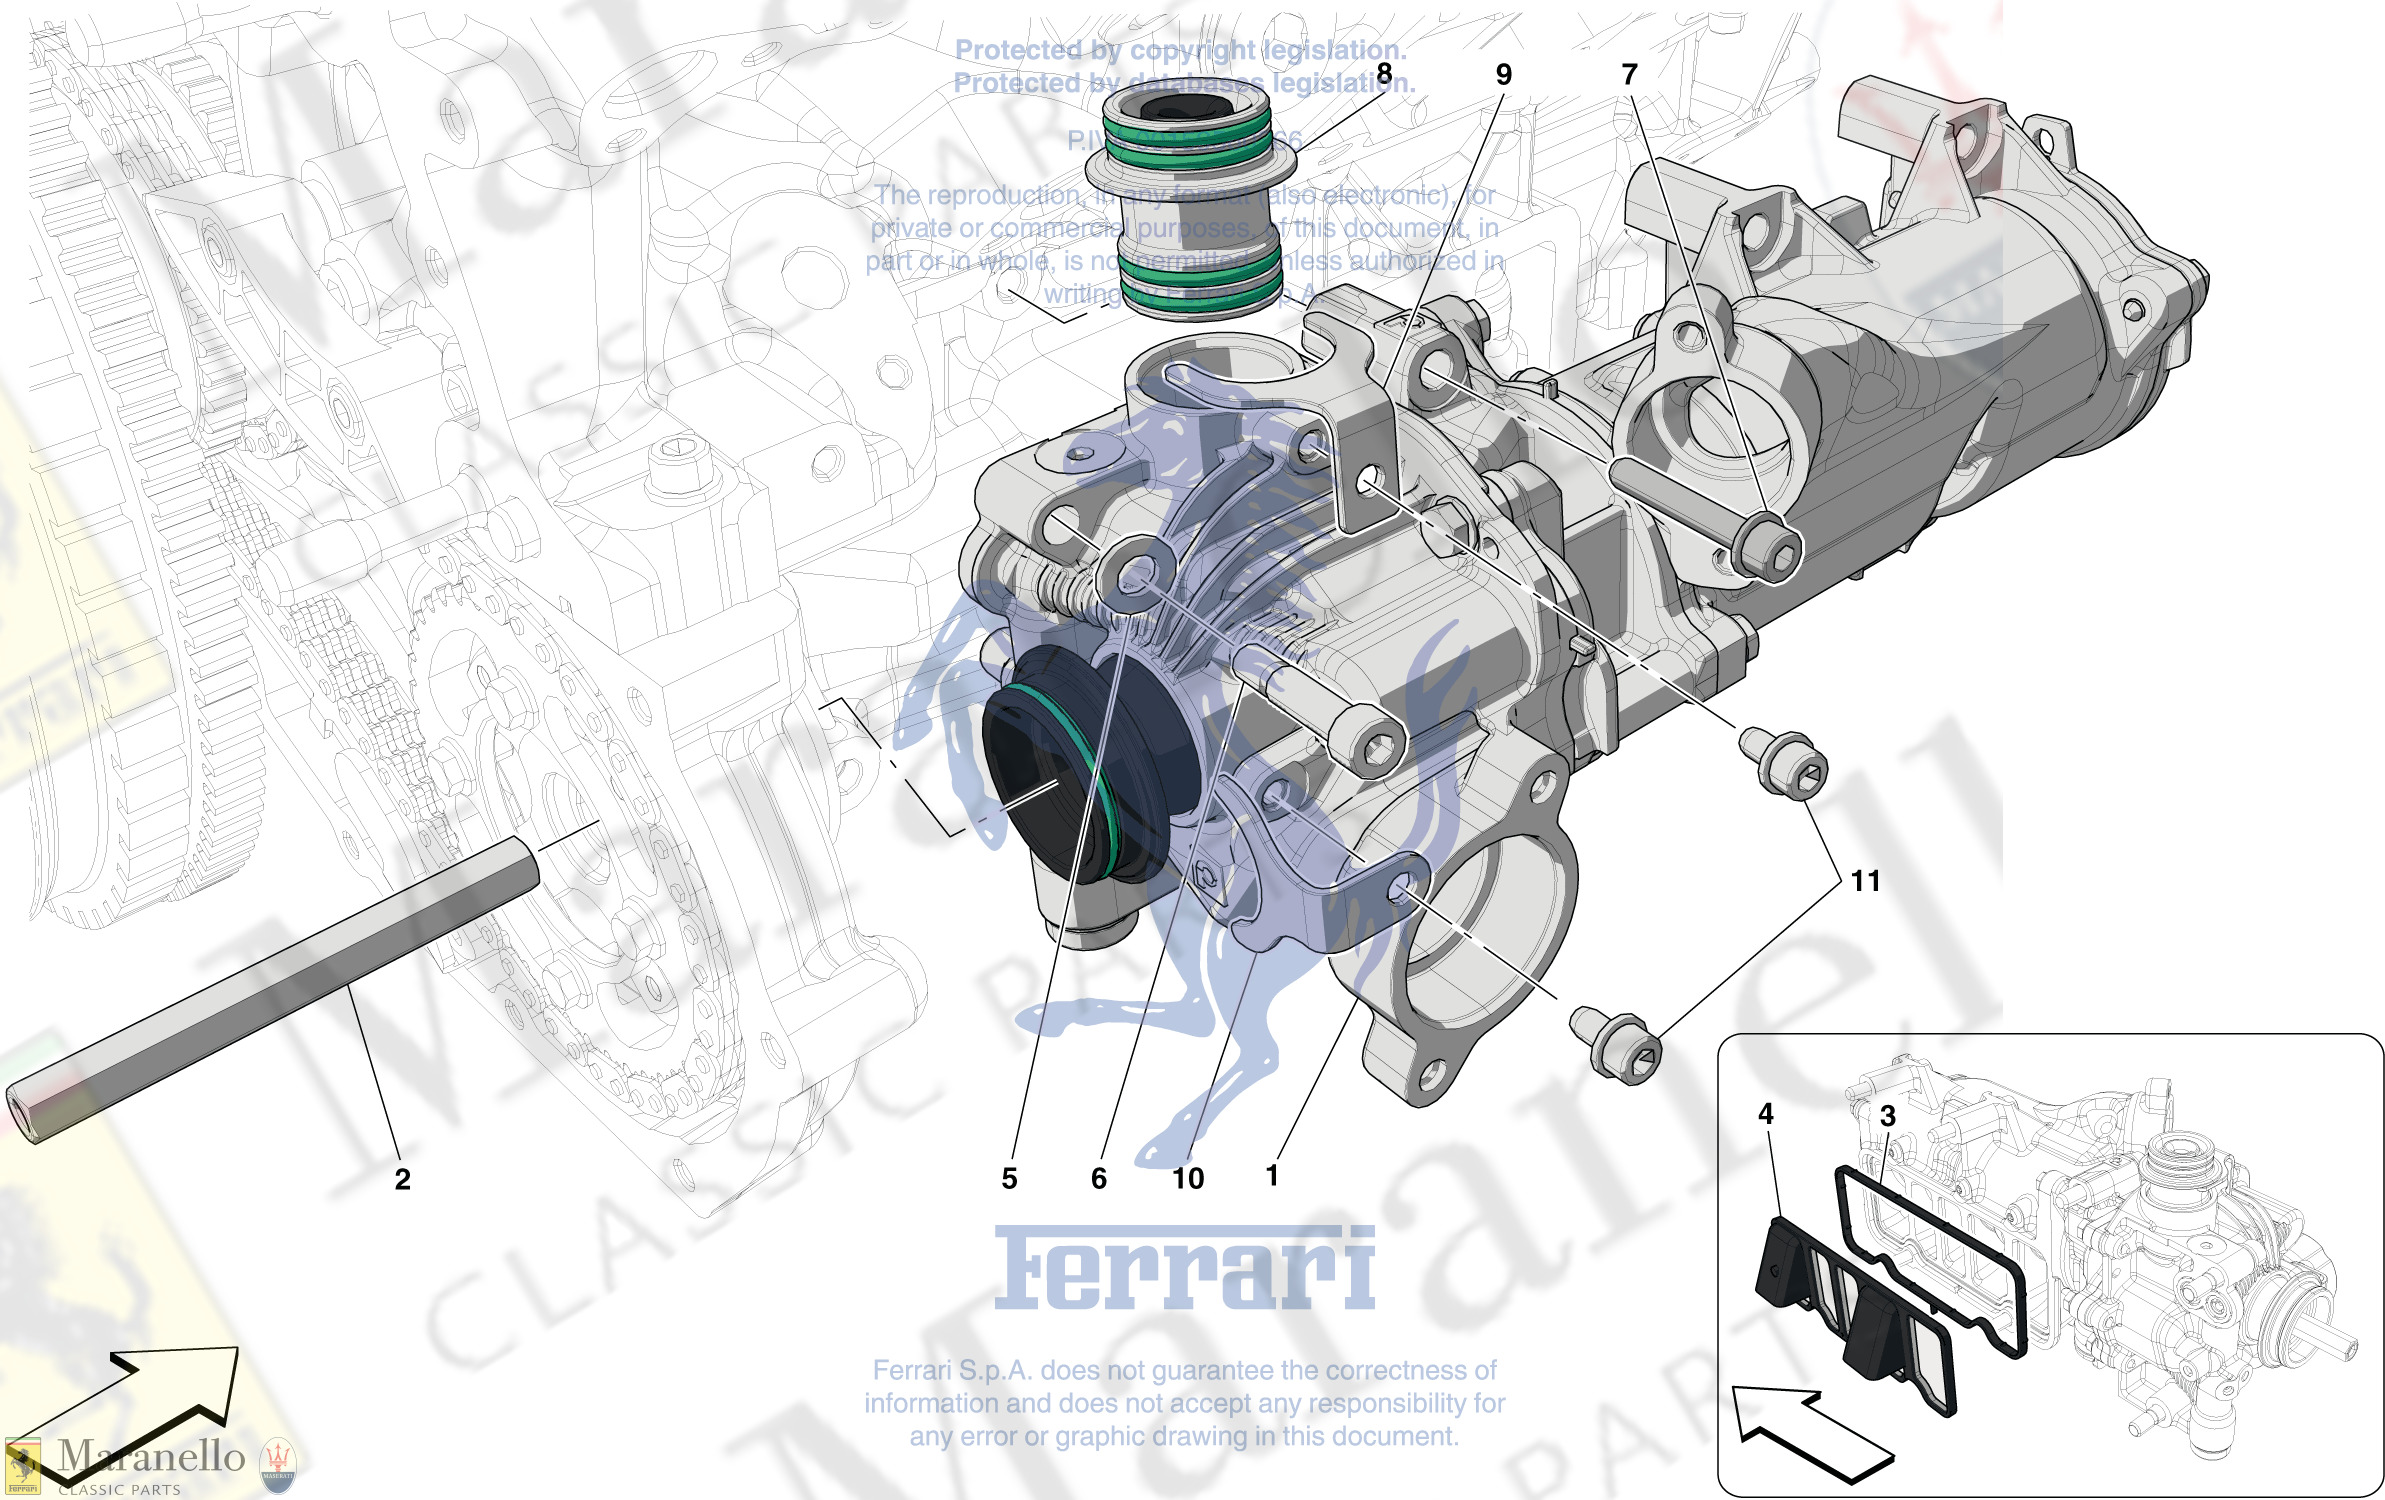 engine oil diagram 017 engine oil pump parts diagram for ferrari 488 pista spider motor oil diagram 017 engine oil pump parts diagram for